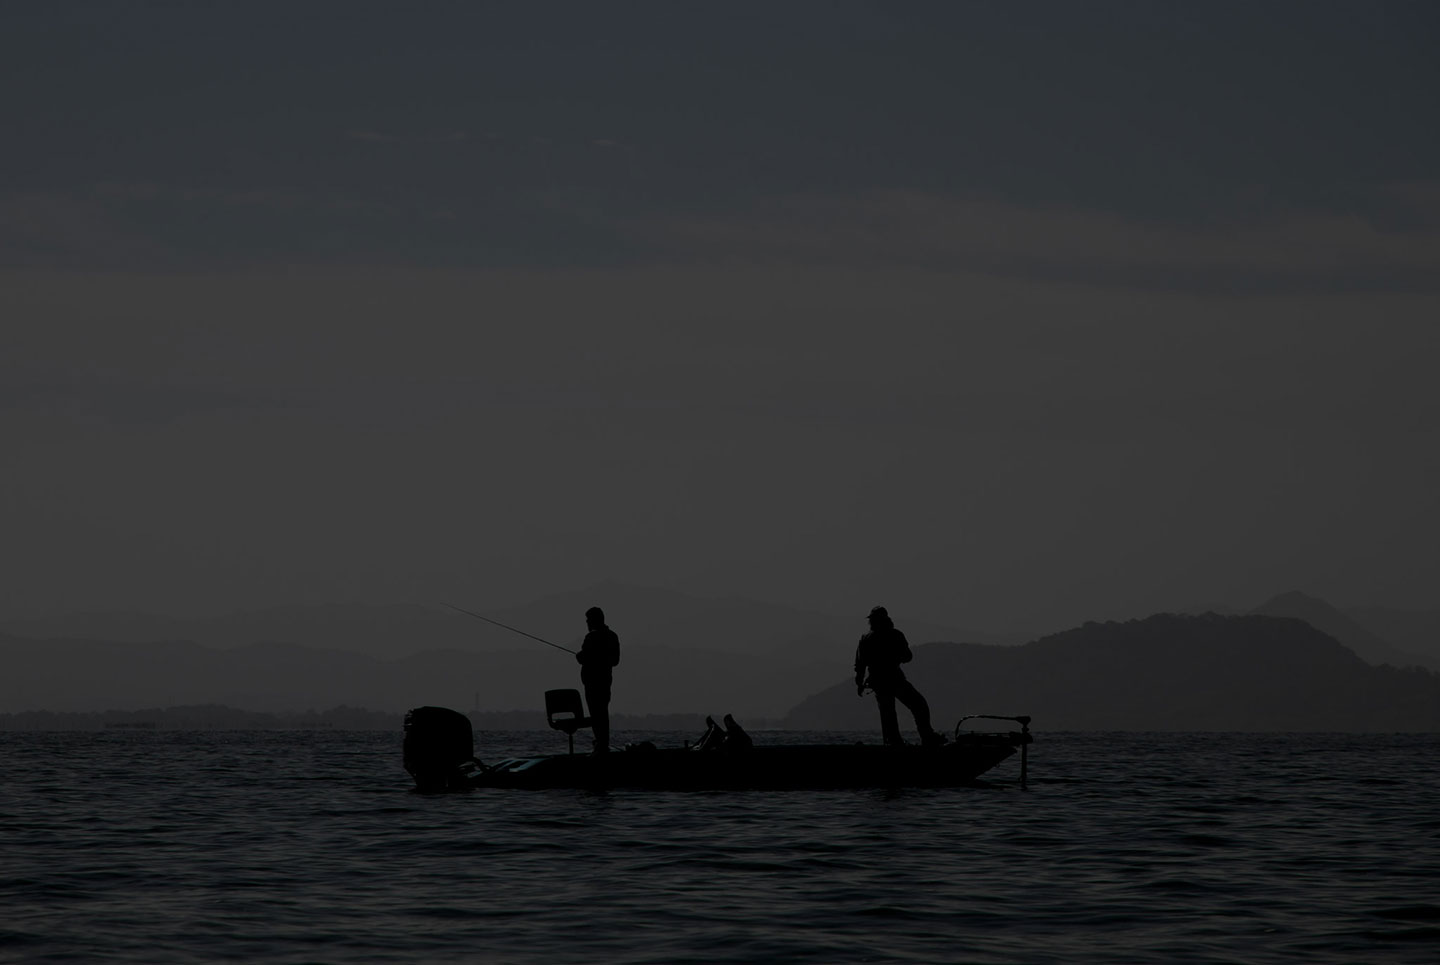 Spend more time fishing with Charted Waters App